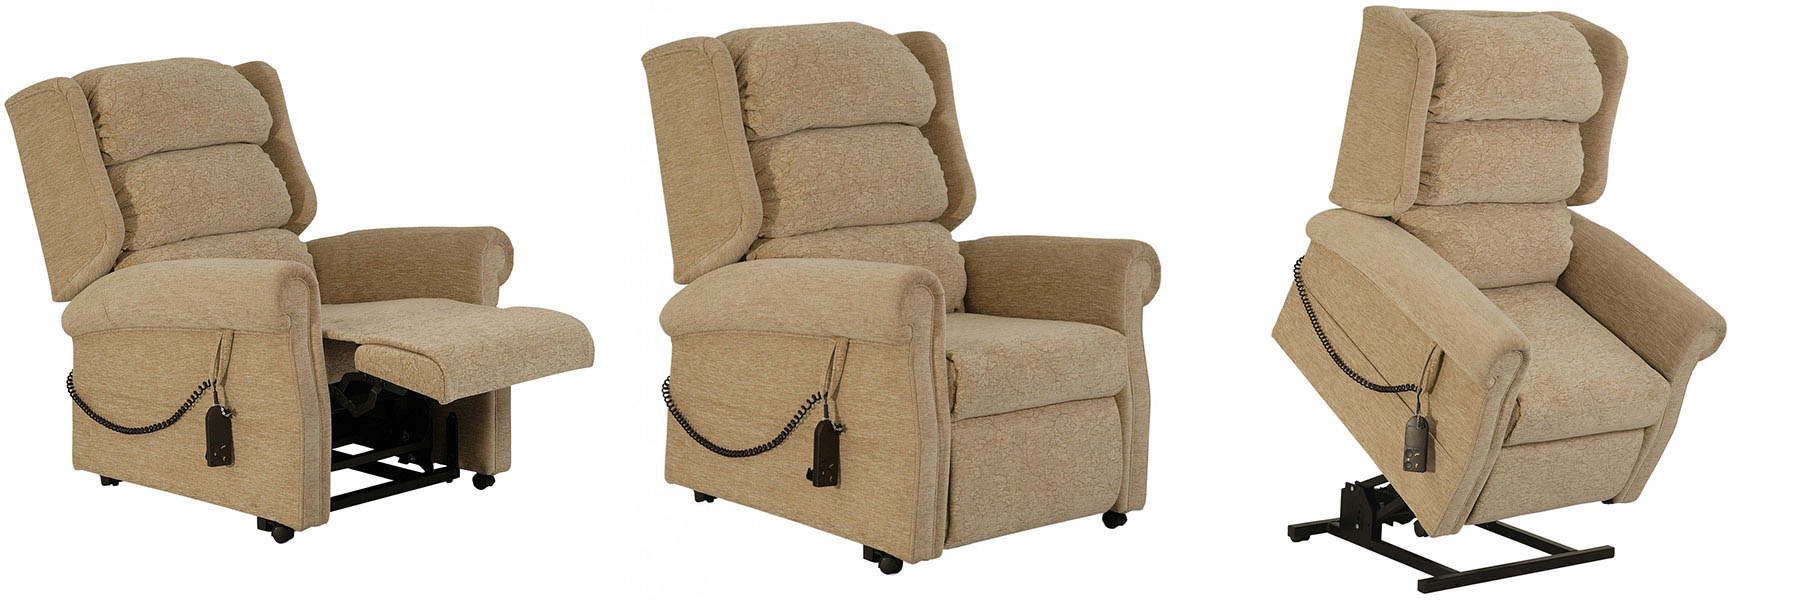 The Royal rise and recliner chair